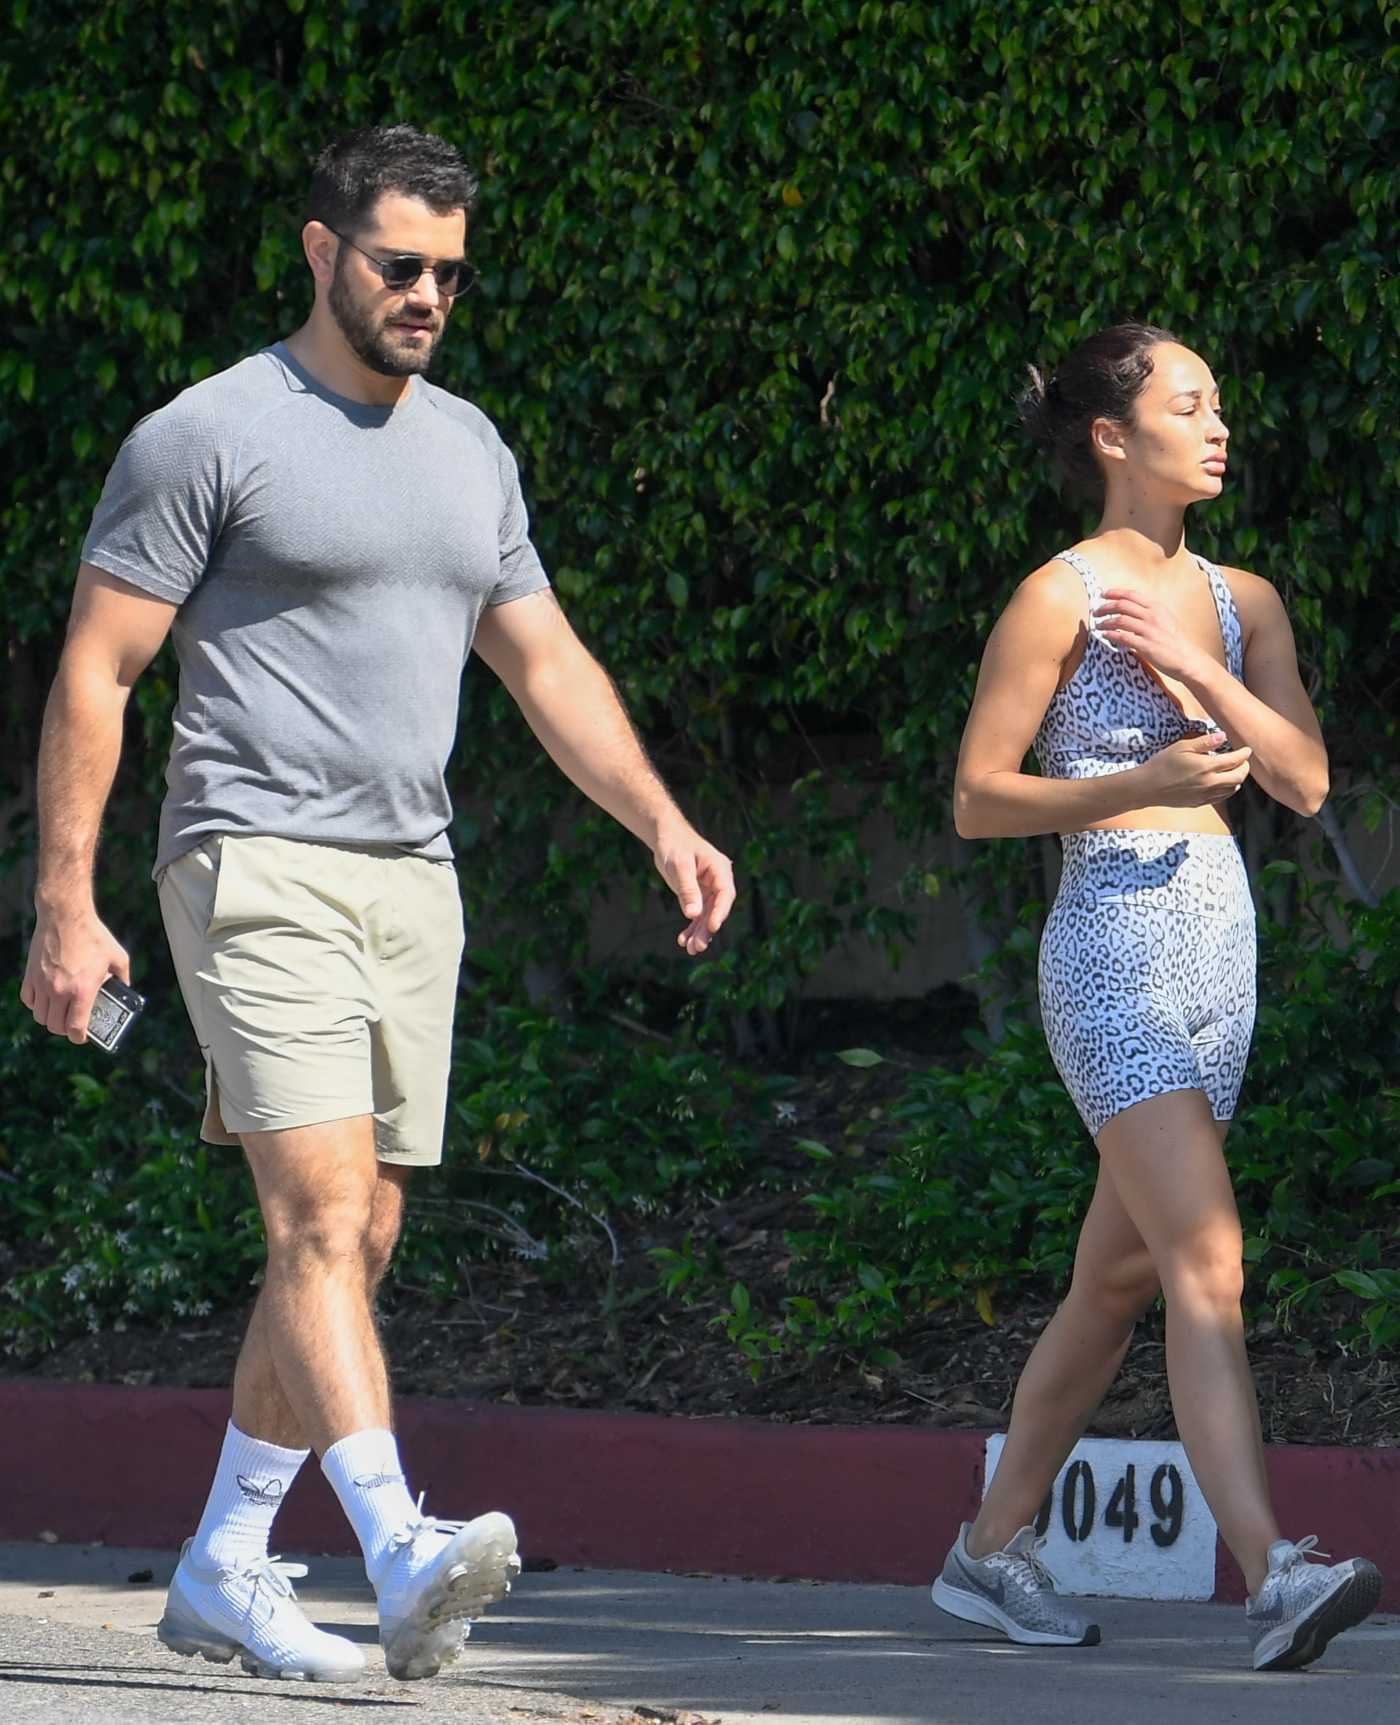 Cara Santana in an Animal Print Workout Clothes Was Seen Out with Jesse Metcalfe in Los Angeles 04/27/2020